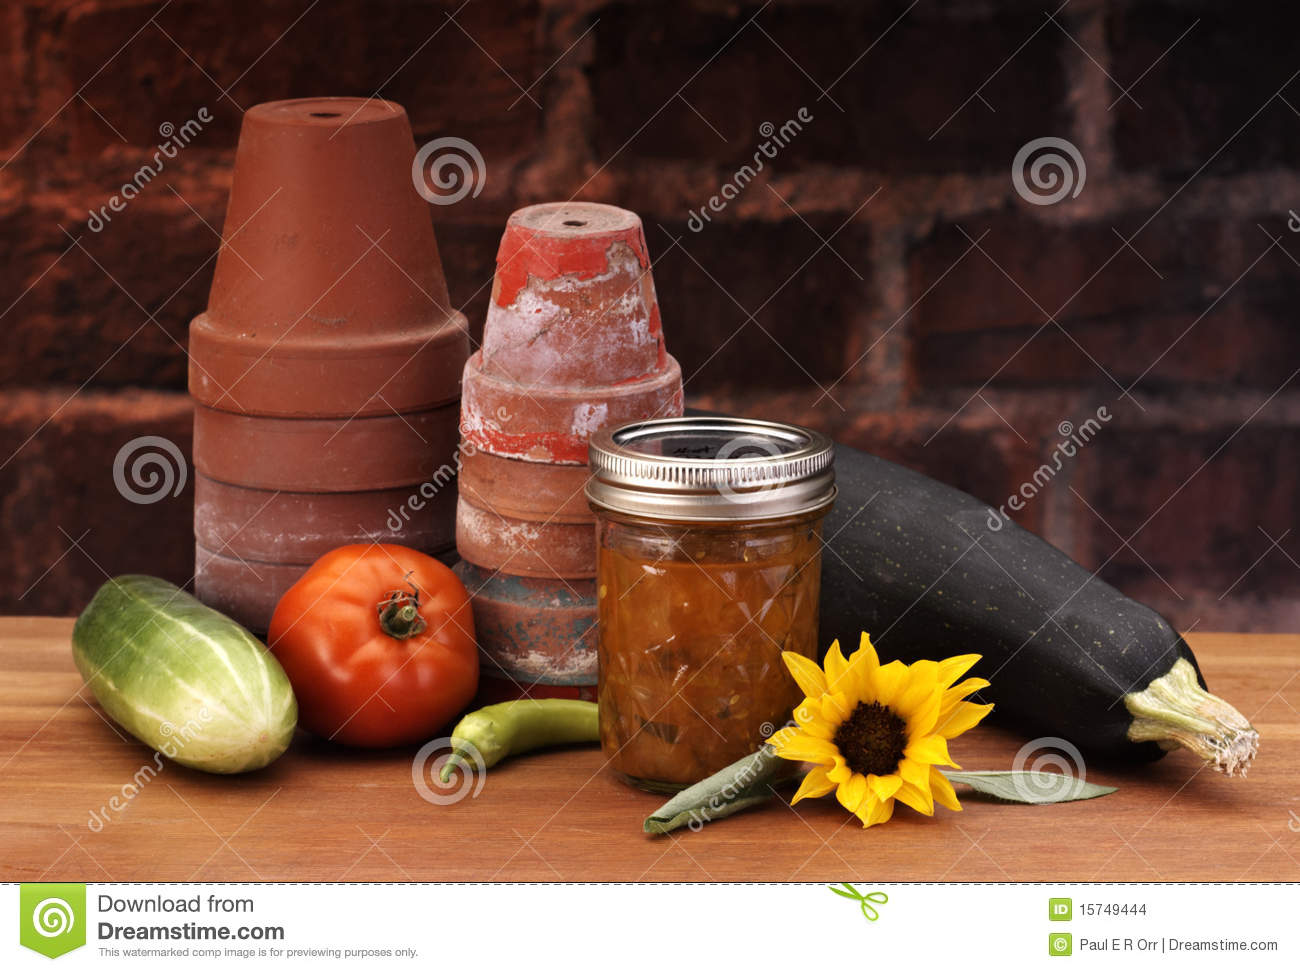 Canned relish